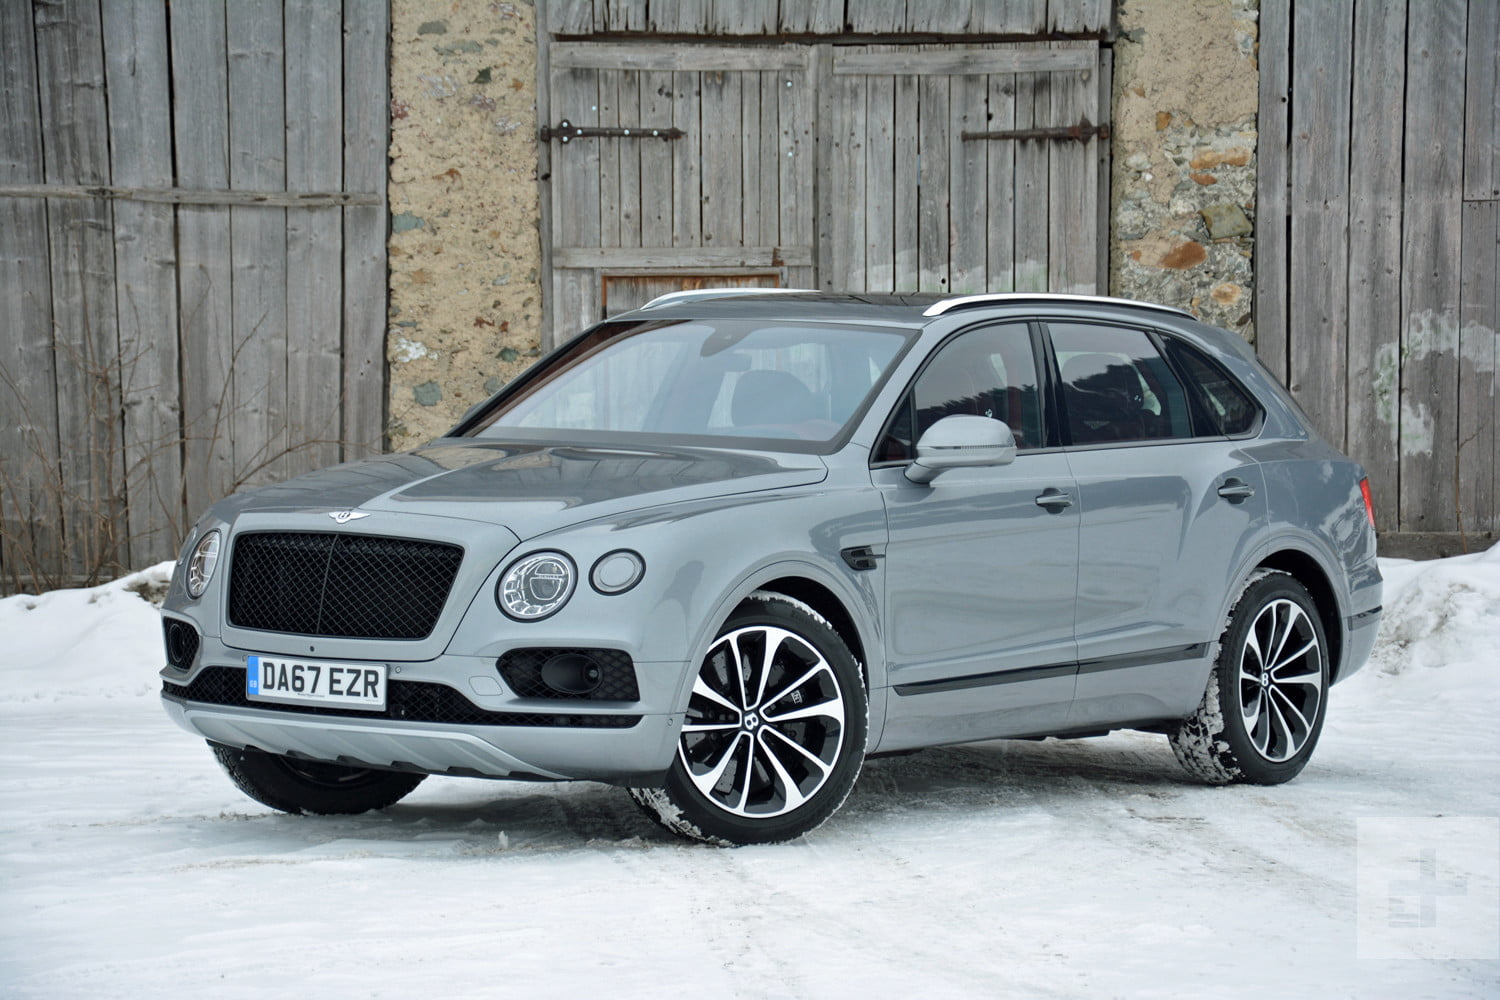 2019 Bentley Bentayga V8 First Drive Review Specs Pictures Digital Trends